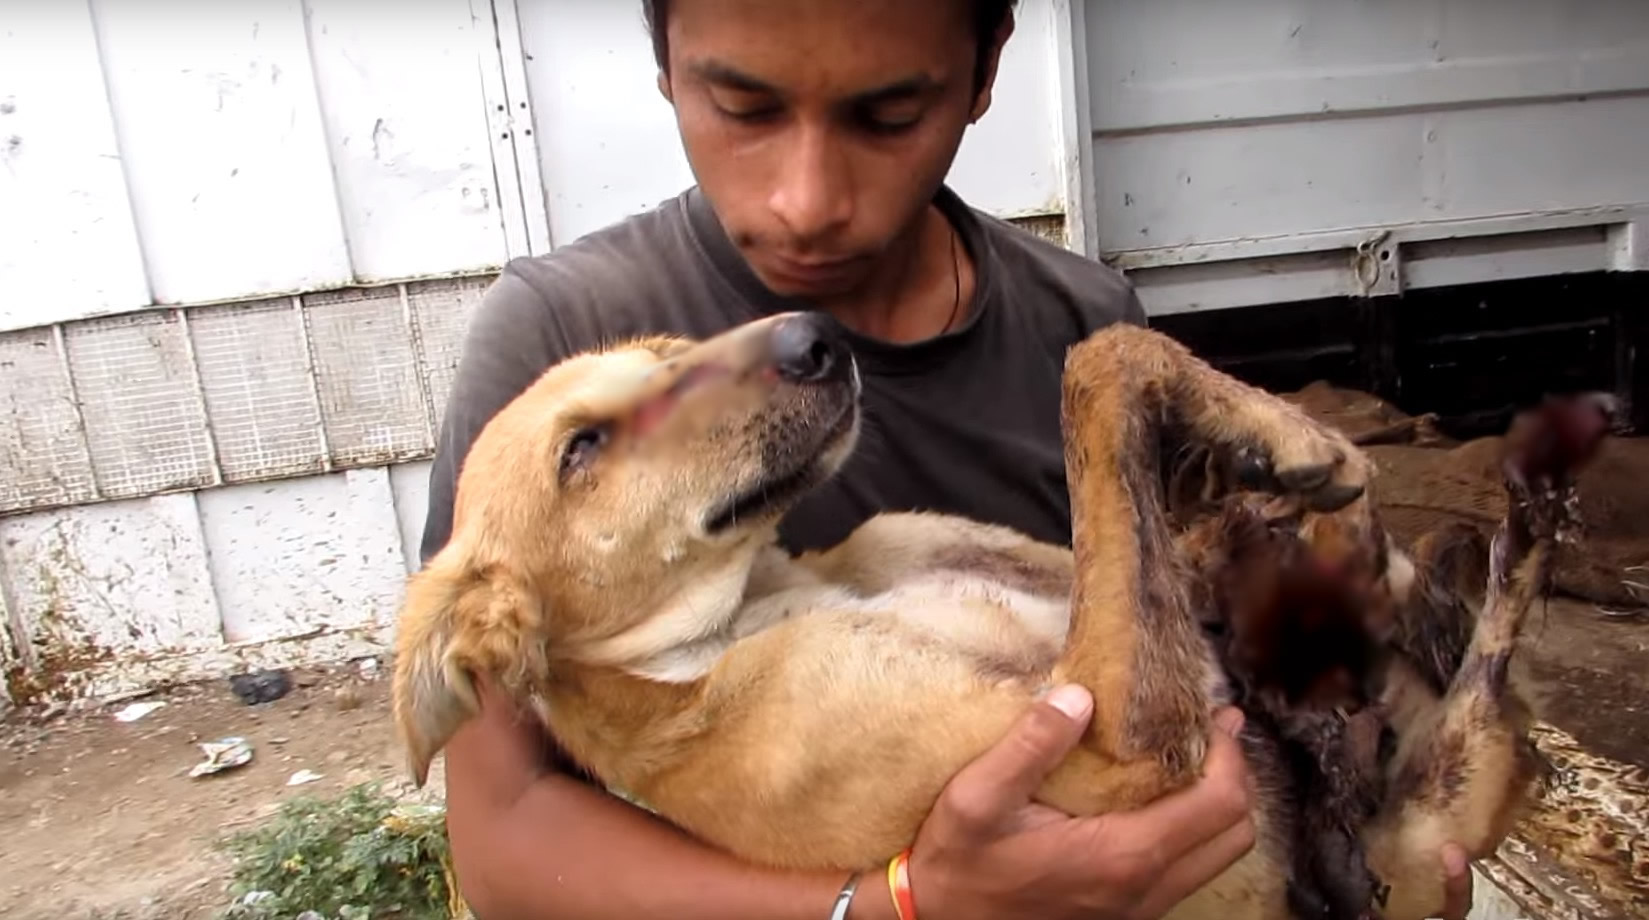 animal-aid-chien-train-blessures-4